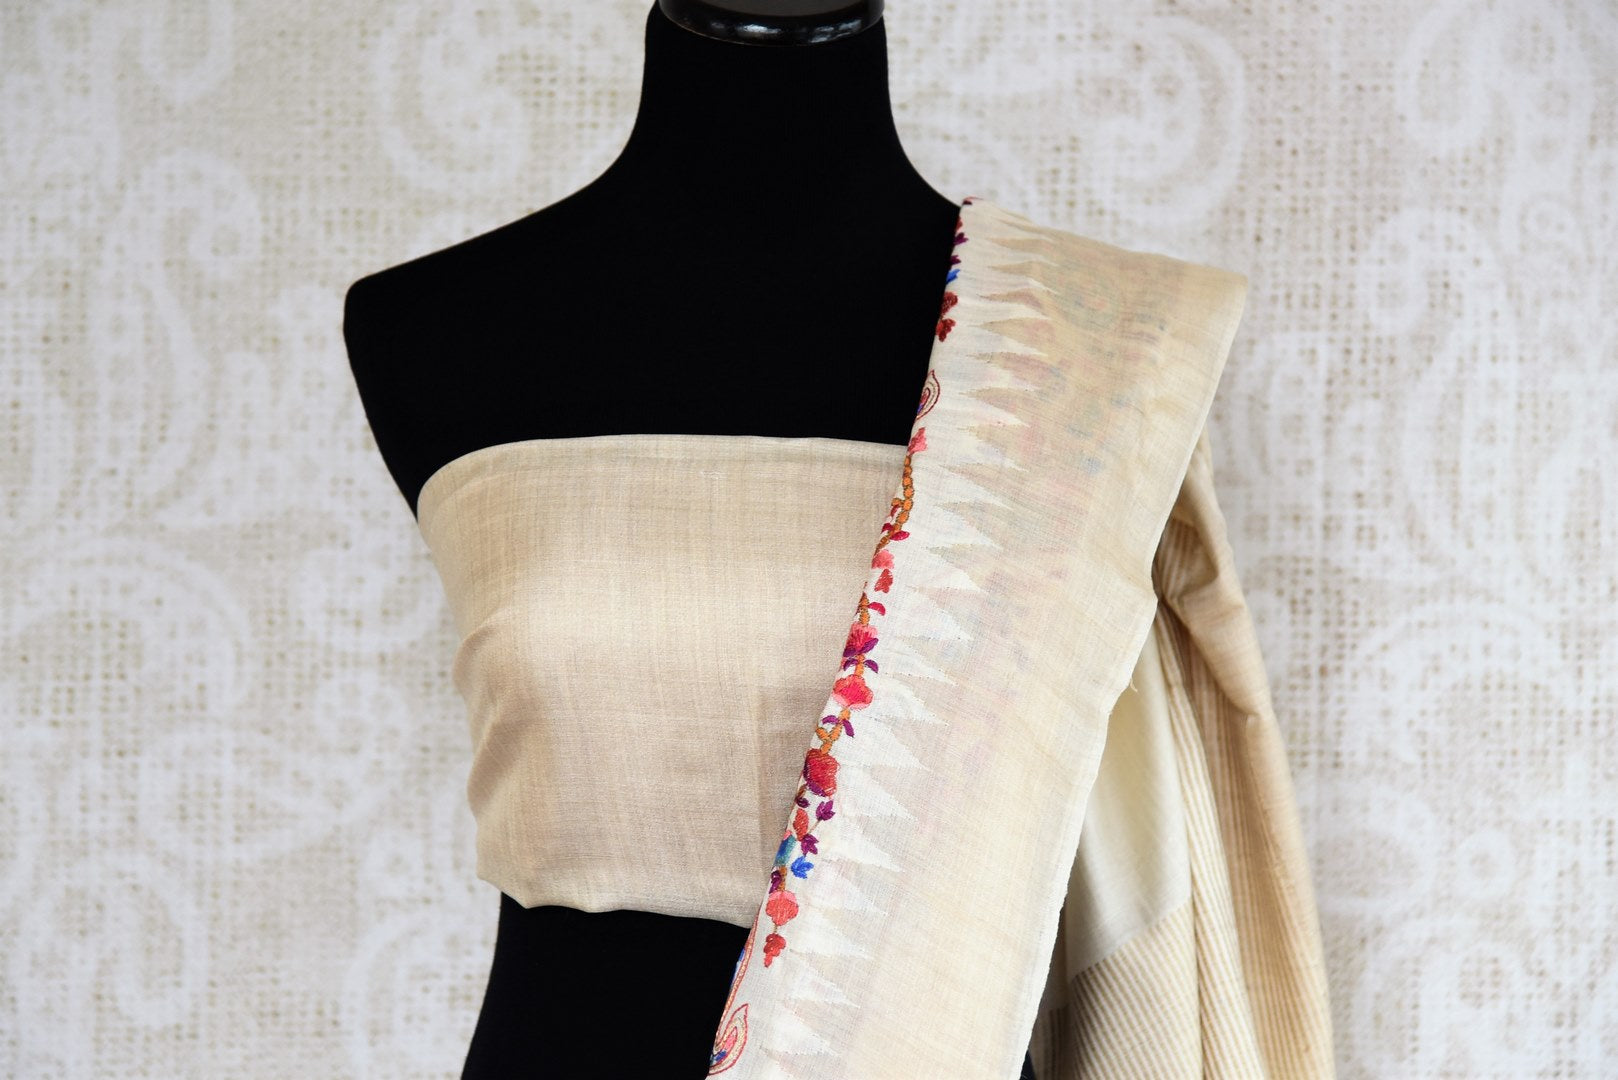 Buy elegant off white tussar silk embroidered saree online in USA. The alluring drape is a perfect choice for festive and special occasions. For more such traditional Indian designer sarees in USA, shop from the exquisite collection at Pure Elegance Indian clothing store.-blouse pallu